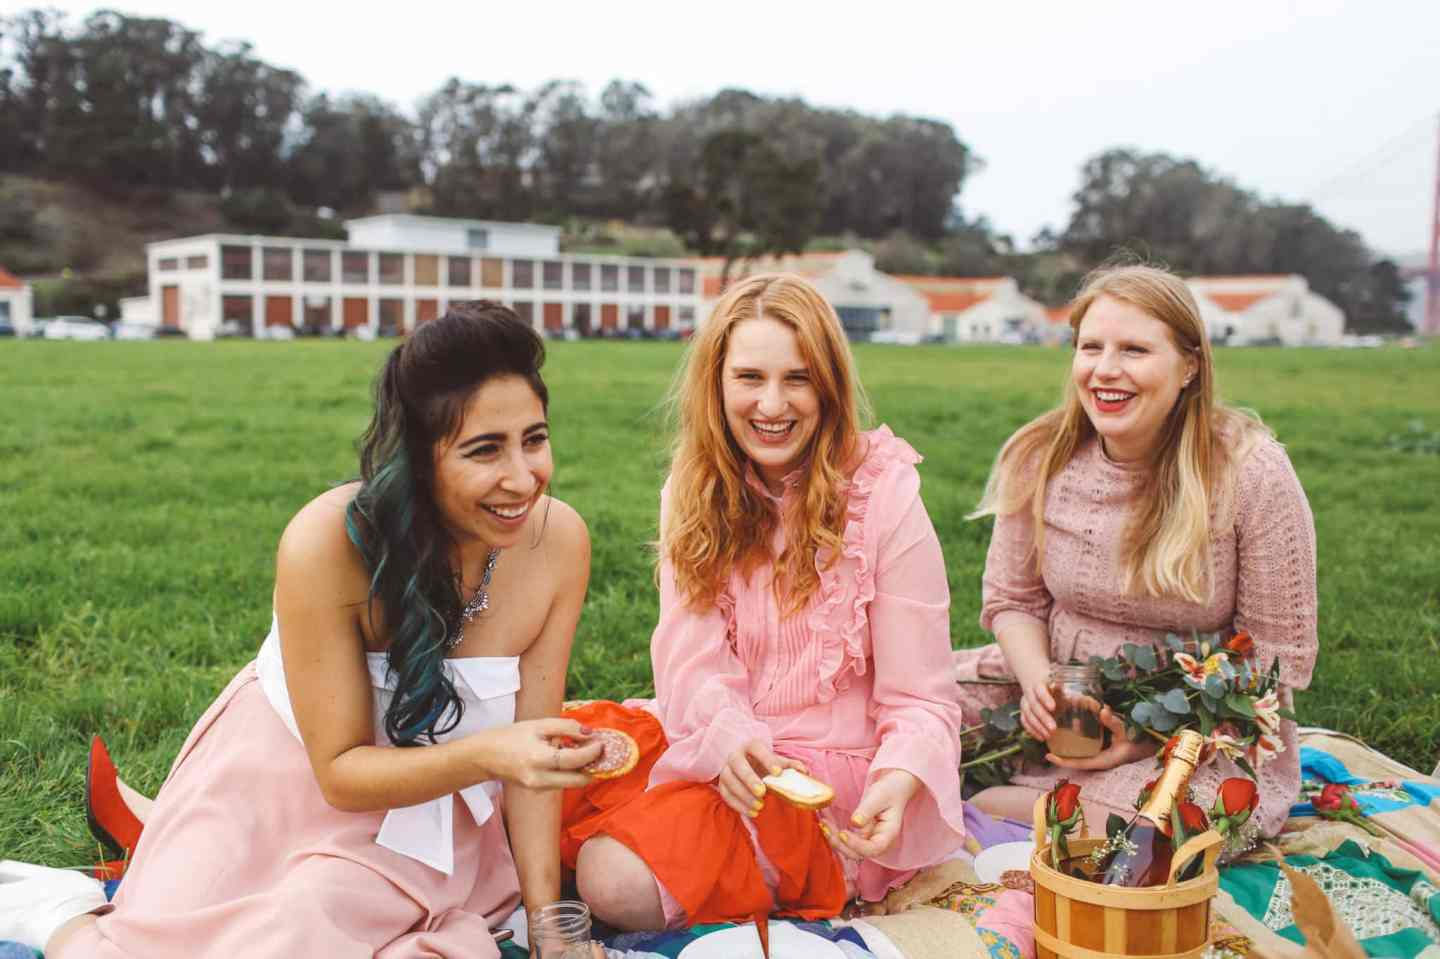 Galentine's Day photoshoot idea picnic san francisco